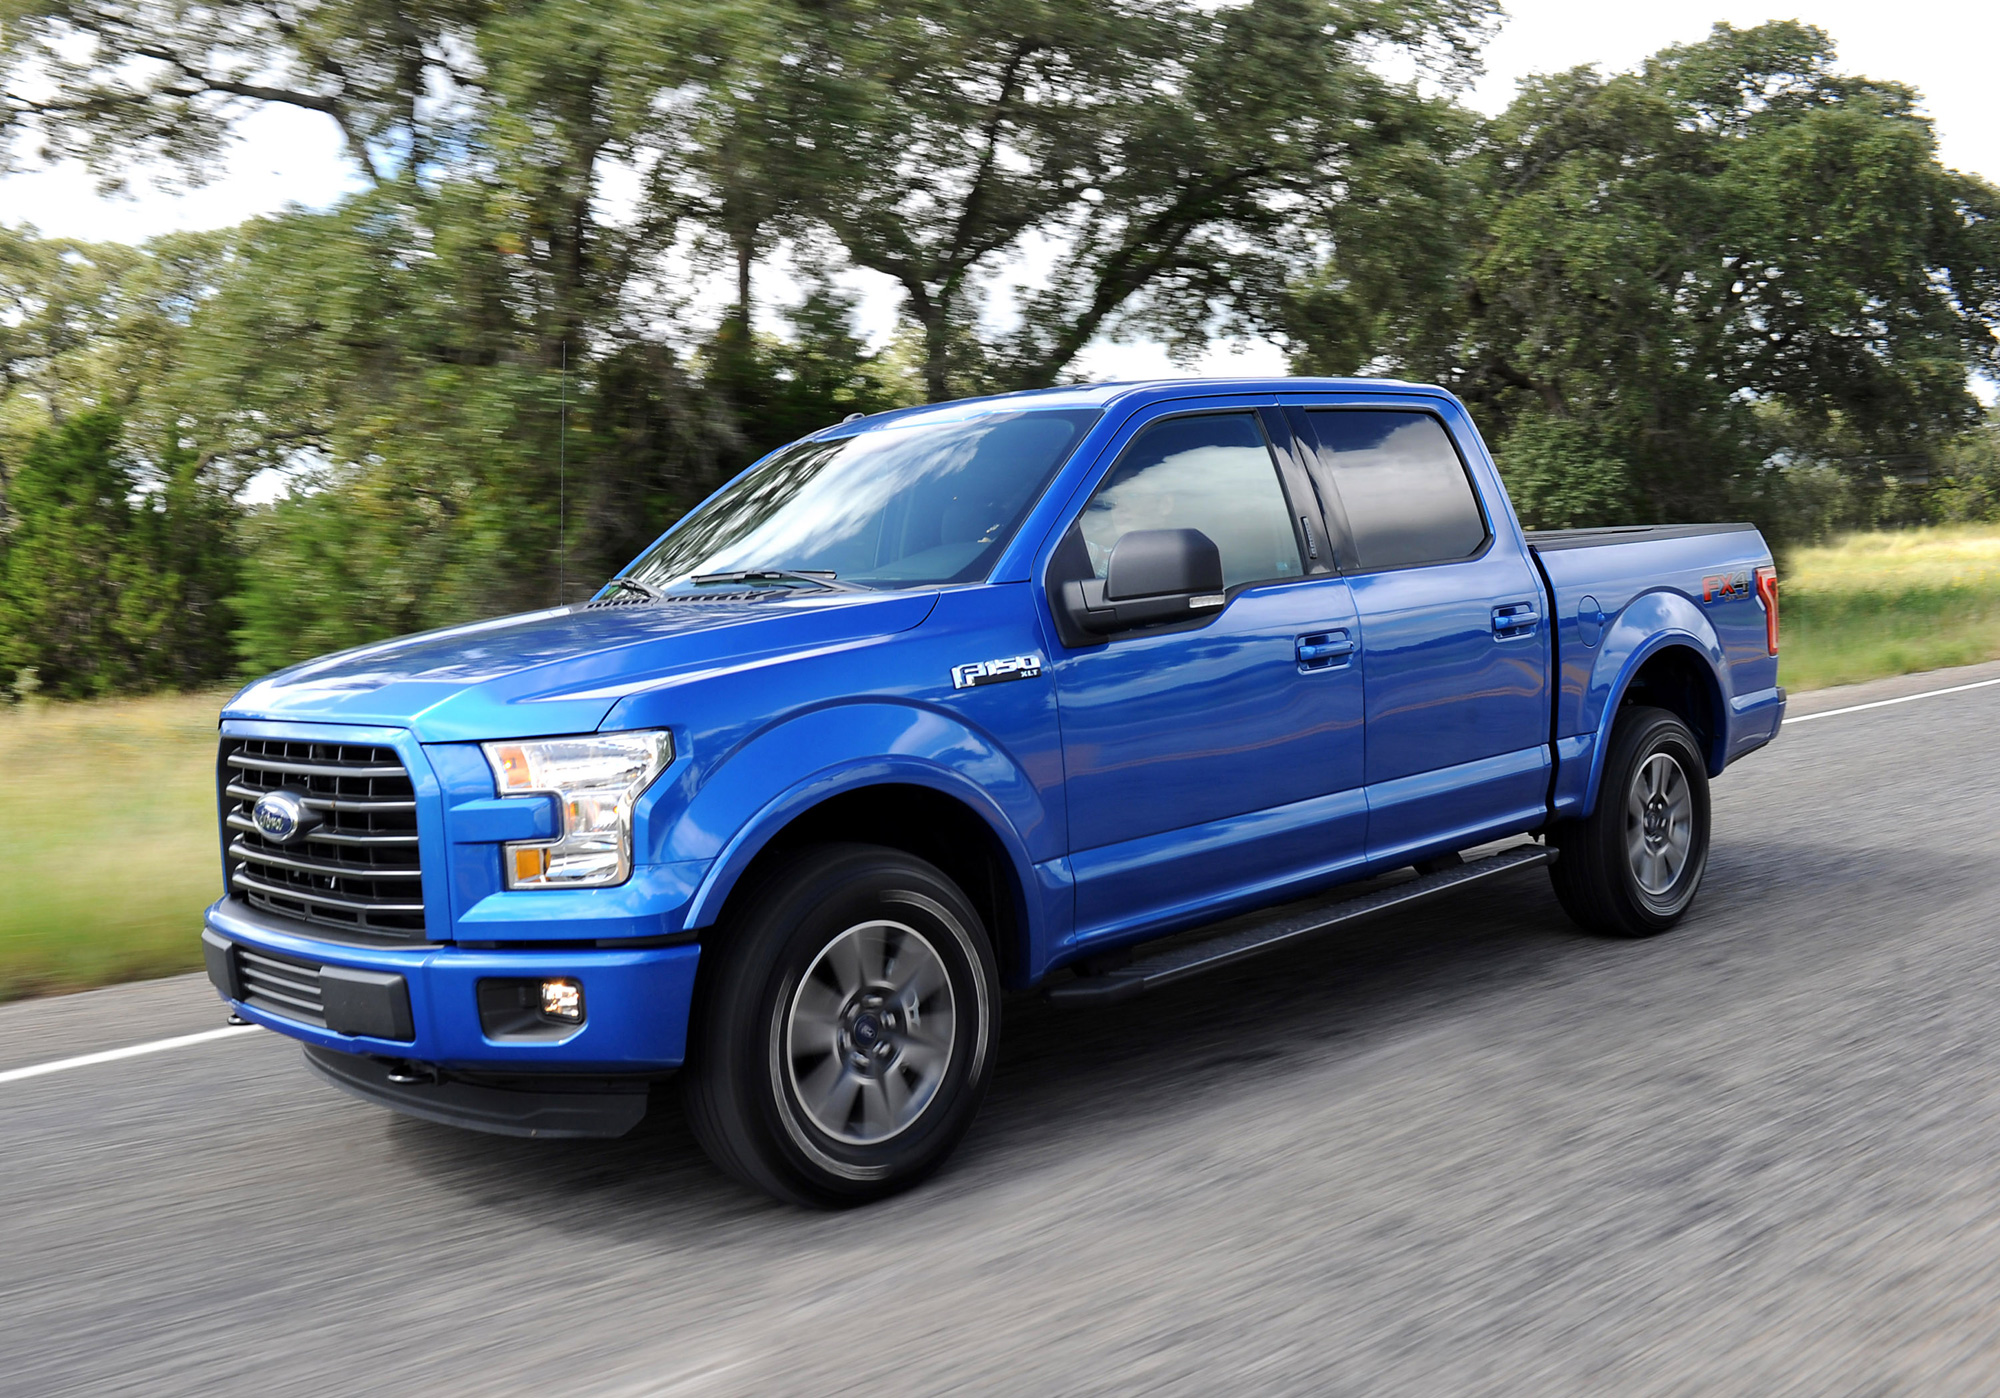 Ford F-150 Production Slowed Due to Frame Shortage